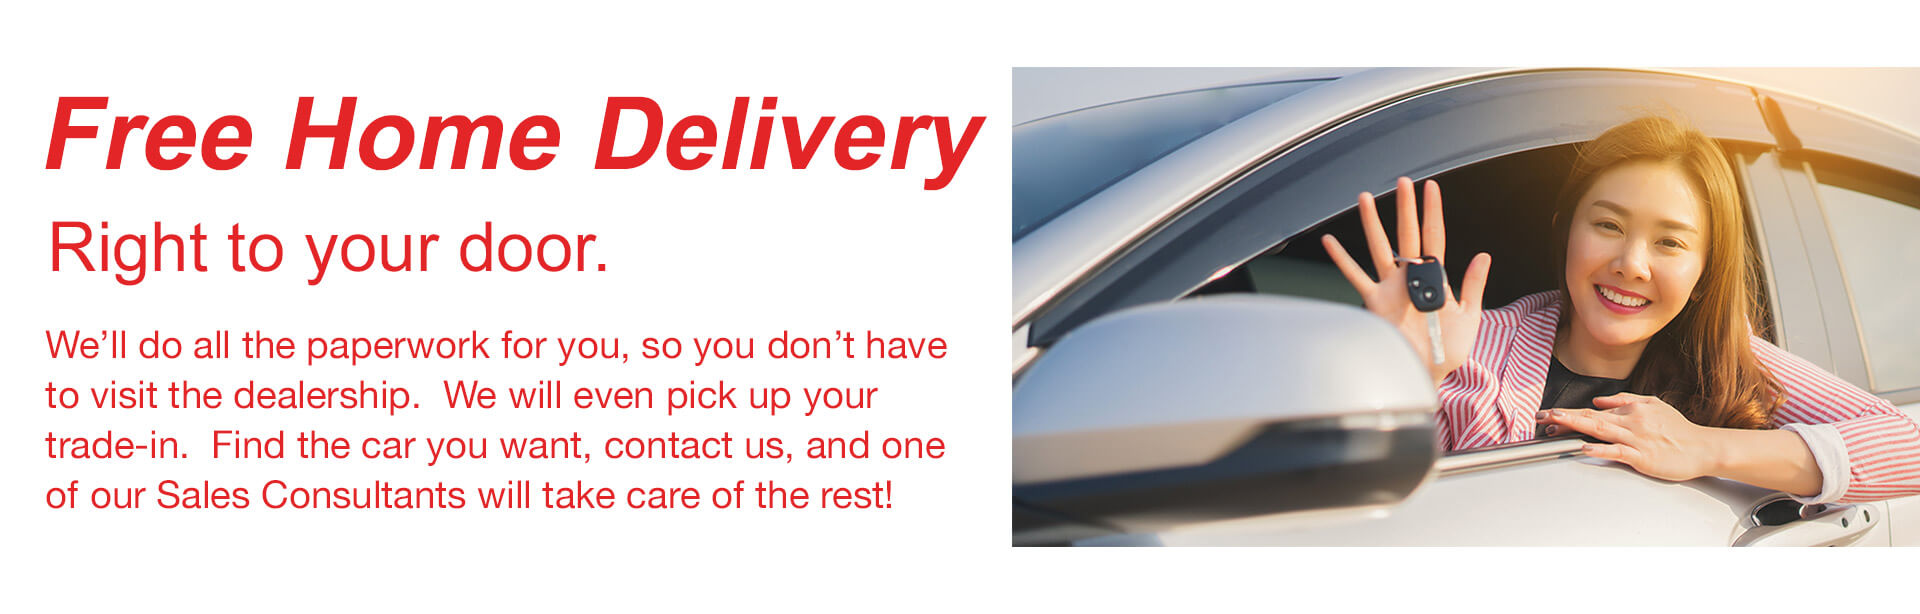 Free Home Delivery Right to your door.